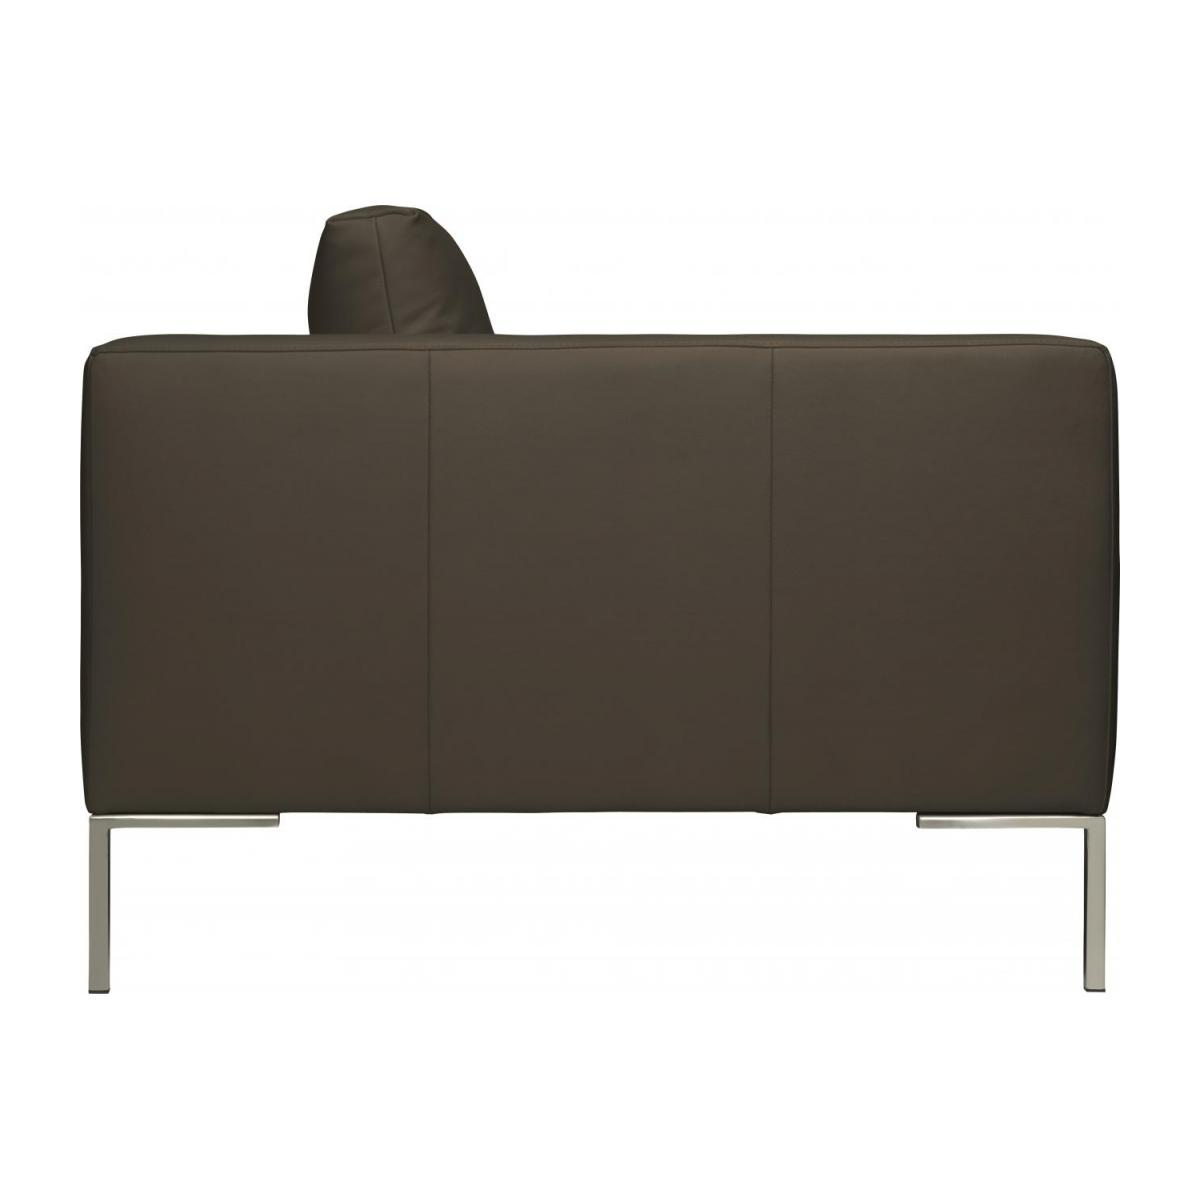 2 seater sofa in Eton veined leather, stone n°6